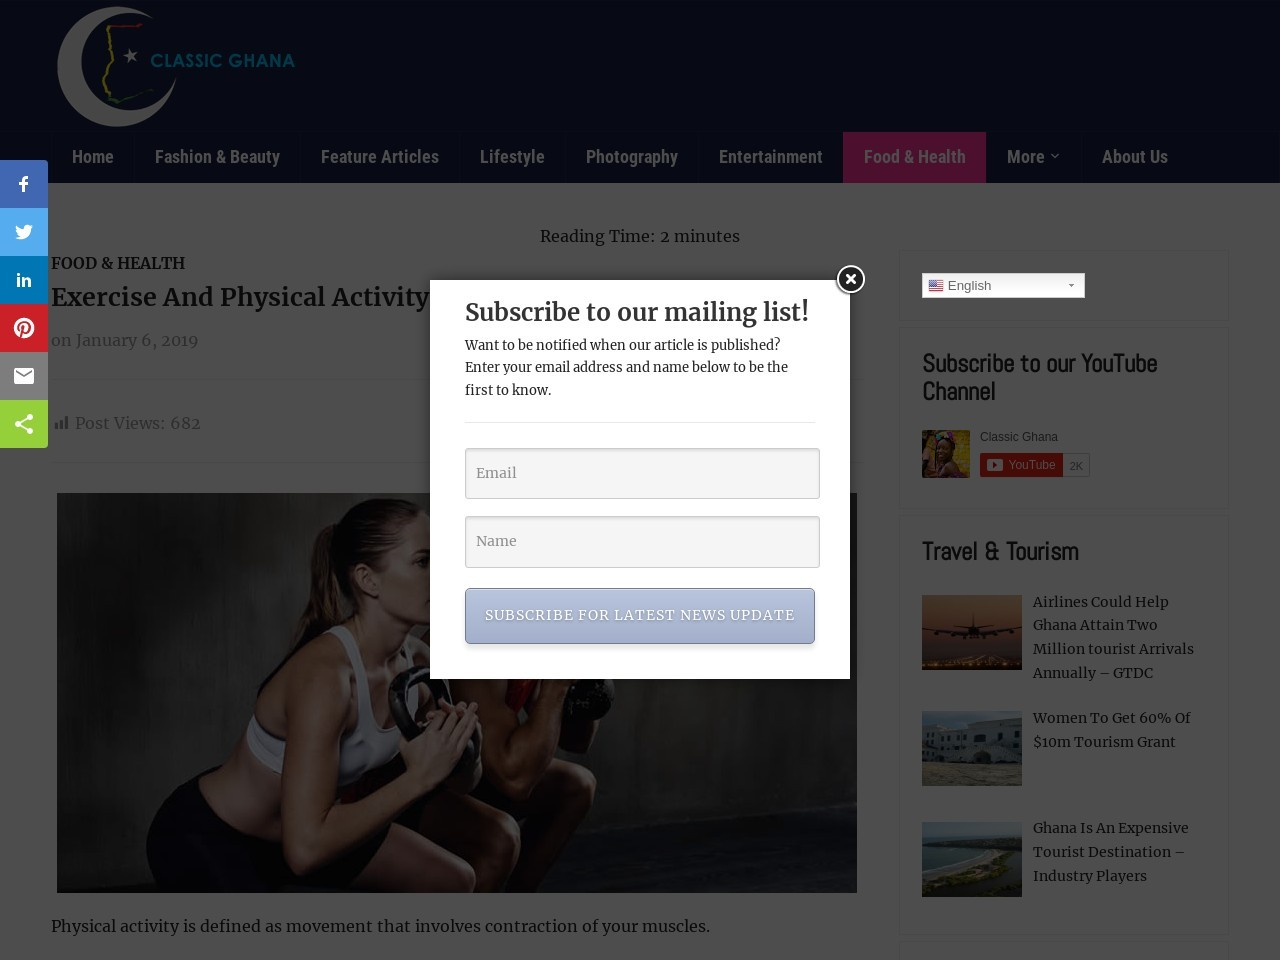 Exercise And Physical Activity: What's The Difference?